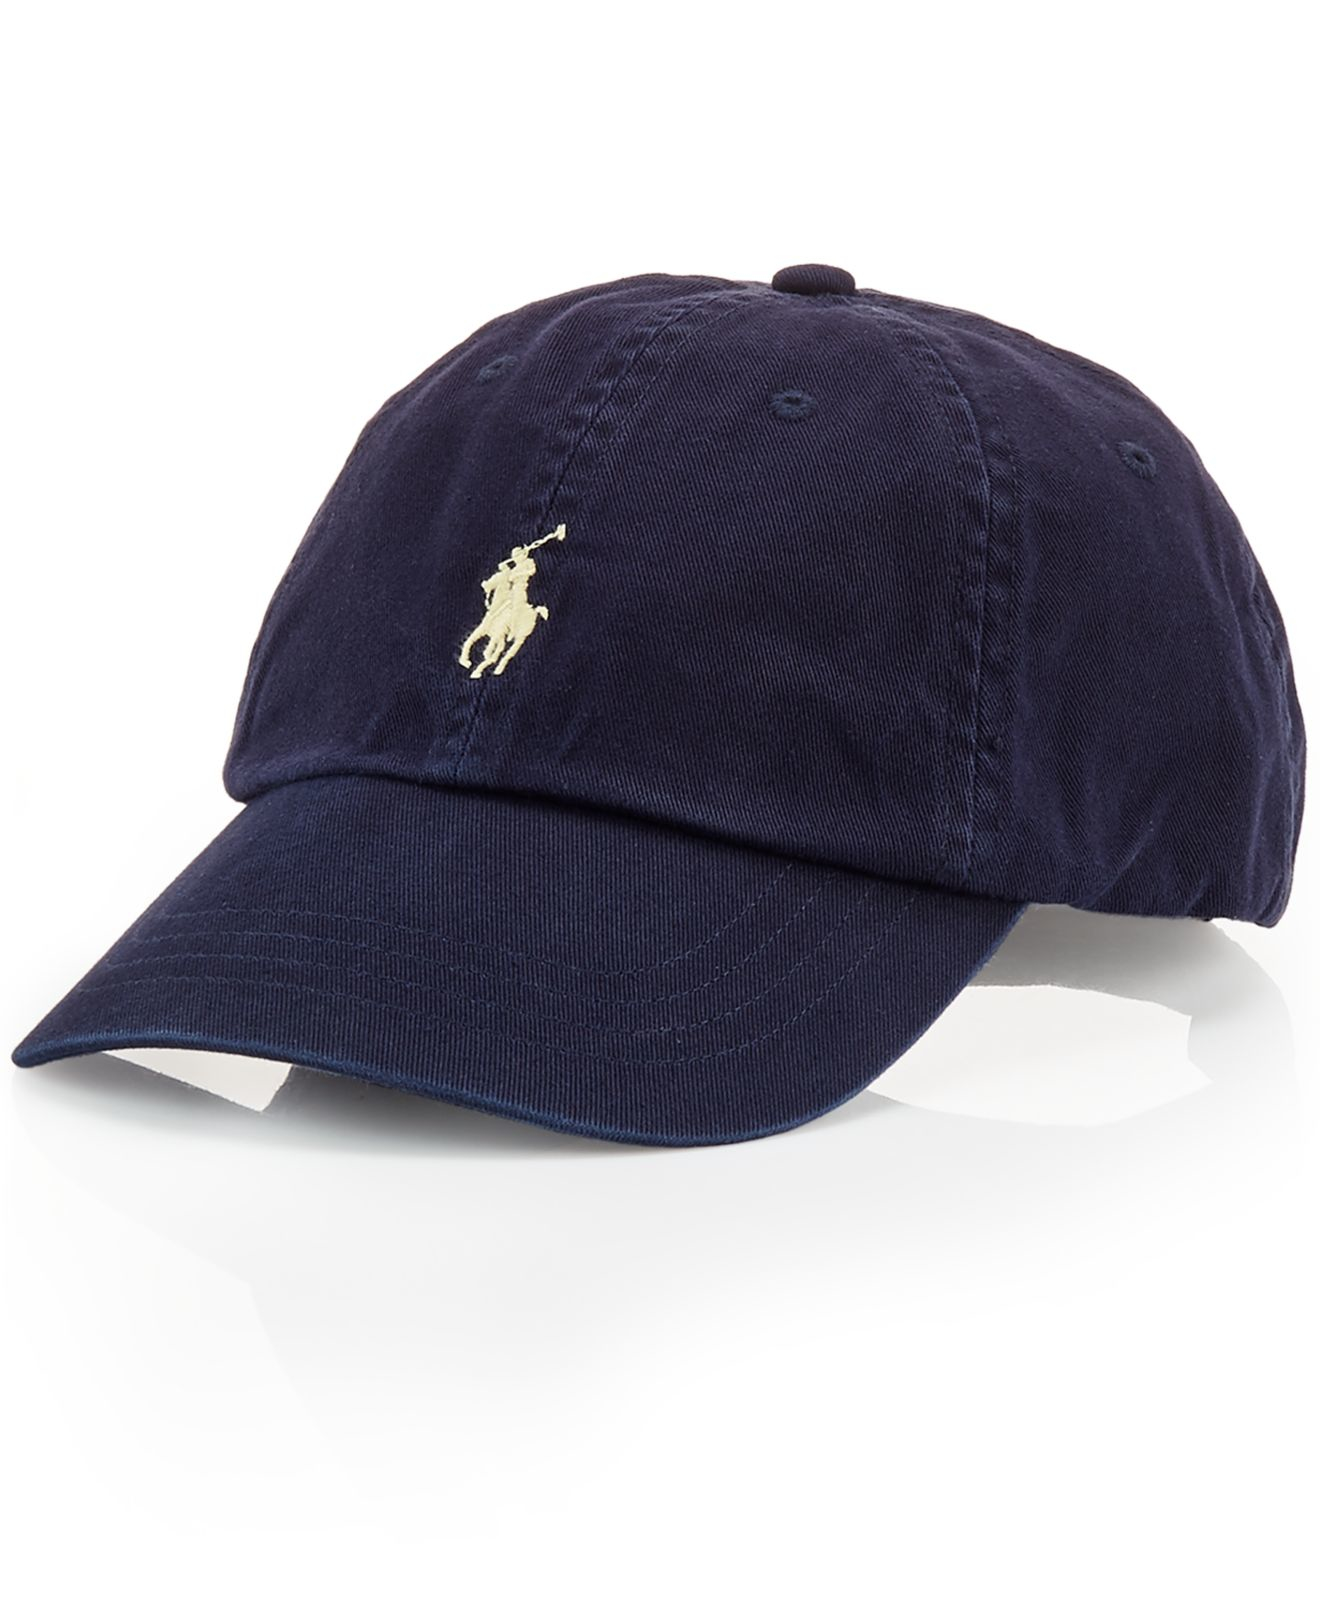 polo ralph lauren blue classic chino sports cap for men. Black Bedroom Furniture Sets. Home Design Ideas